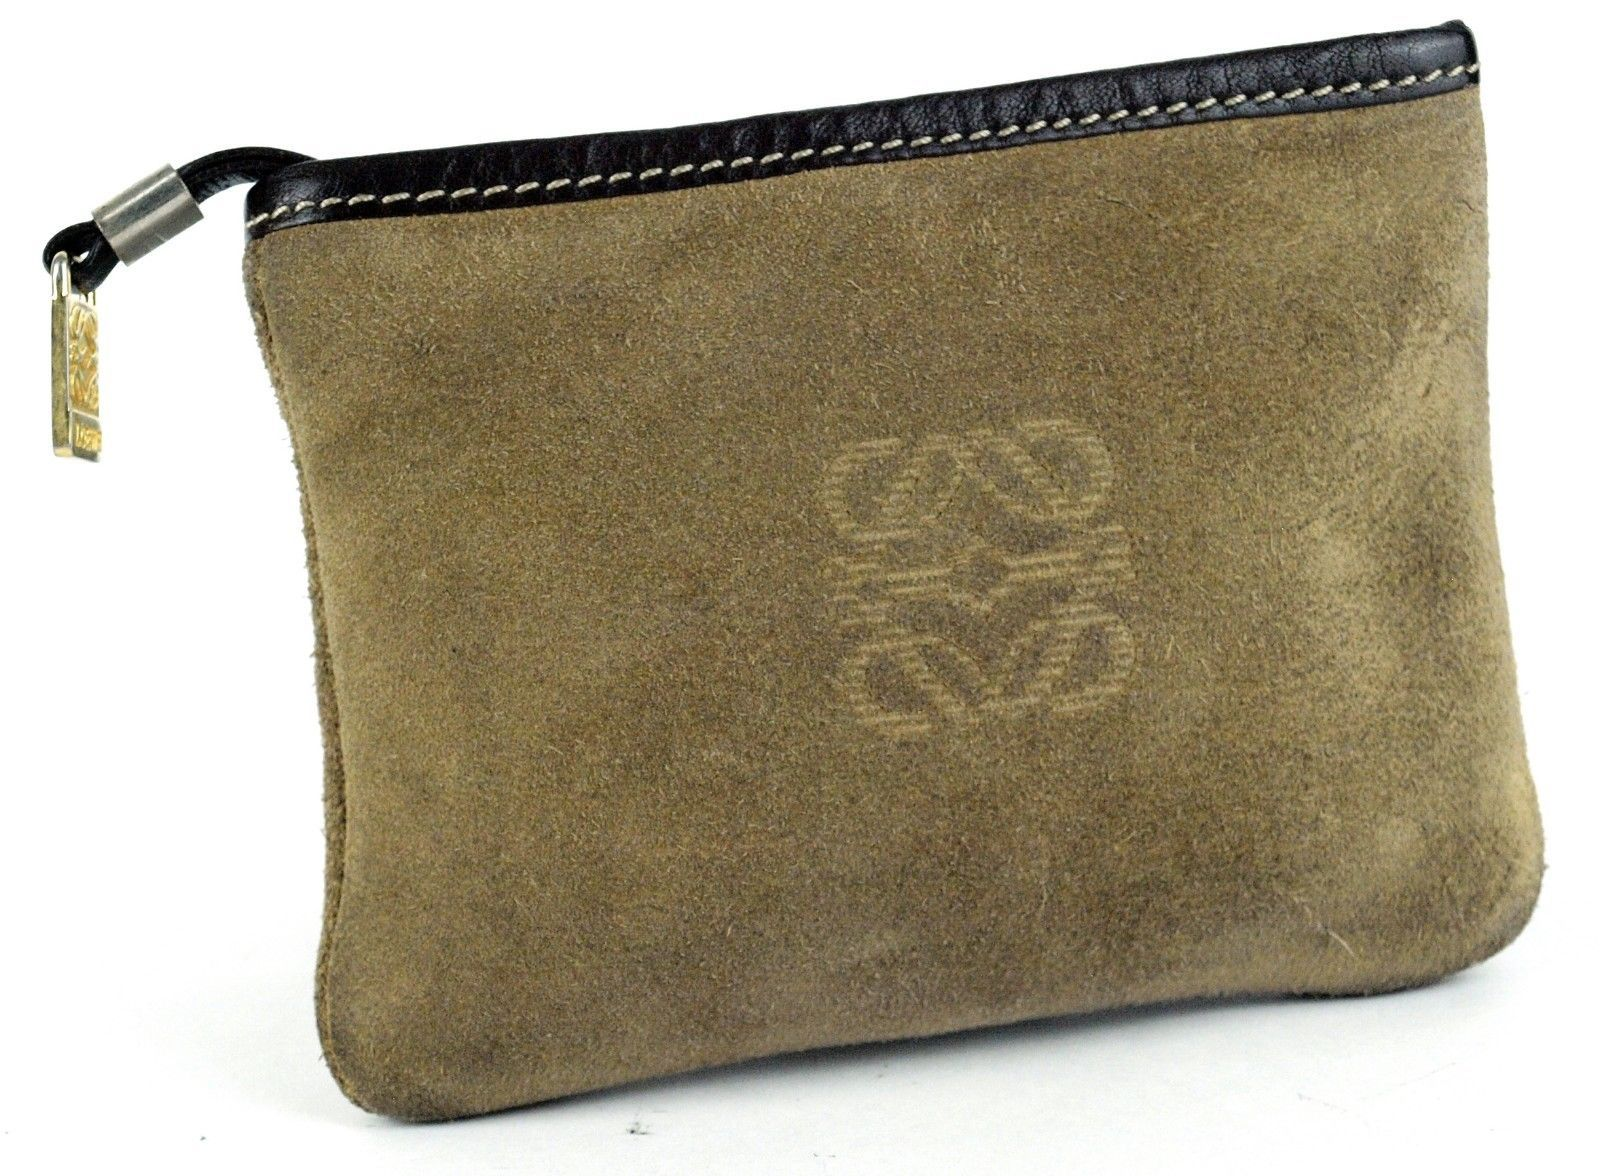 Primary image for LOEWE Yellow-Brown Suede Leather Mini Accessory Pouch / Bag accessory pocket